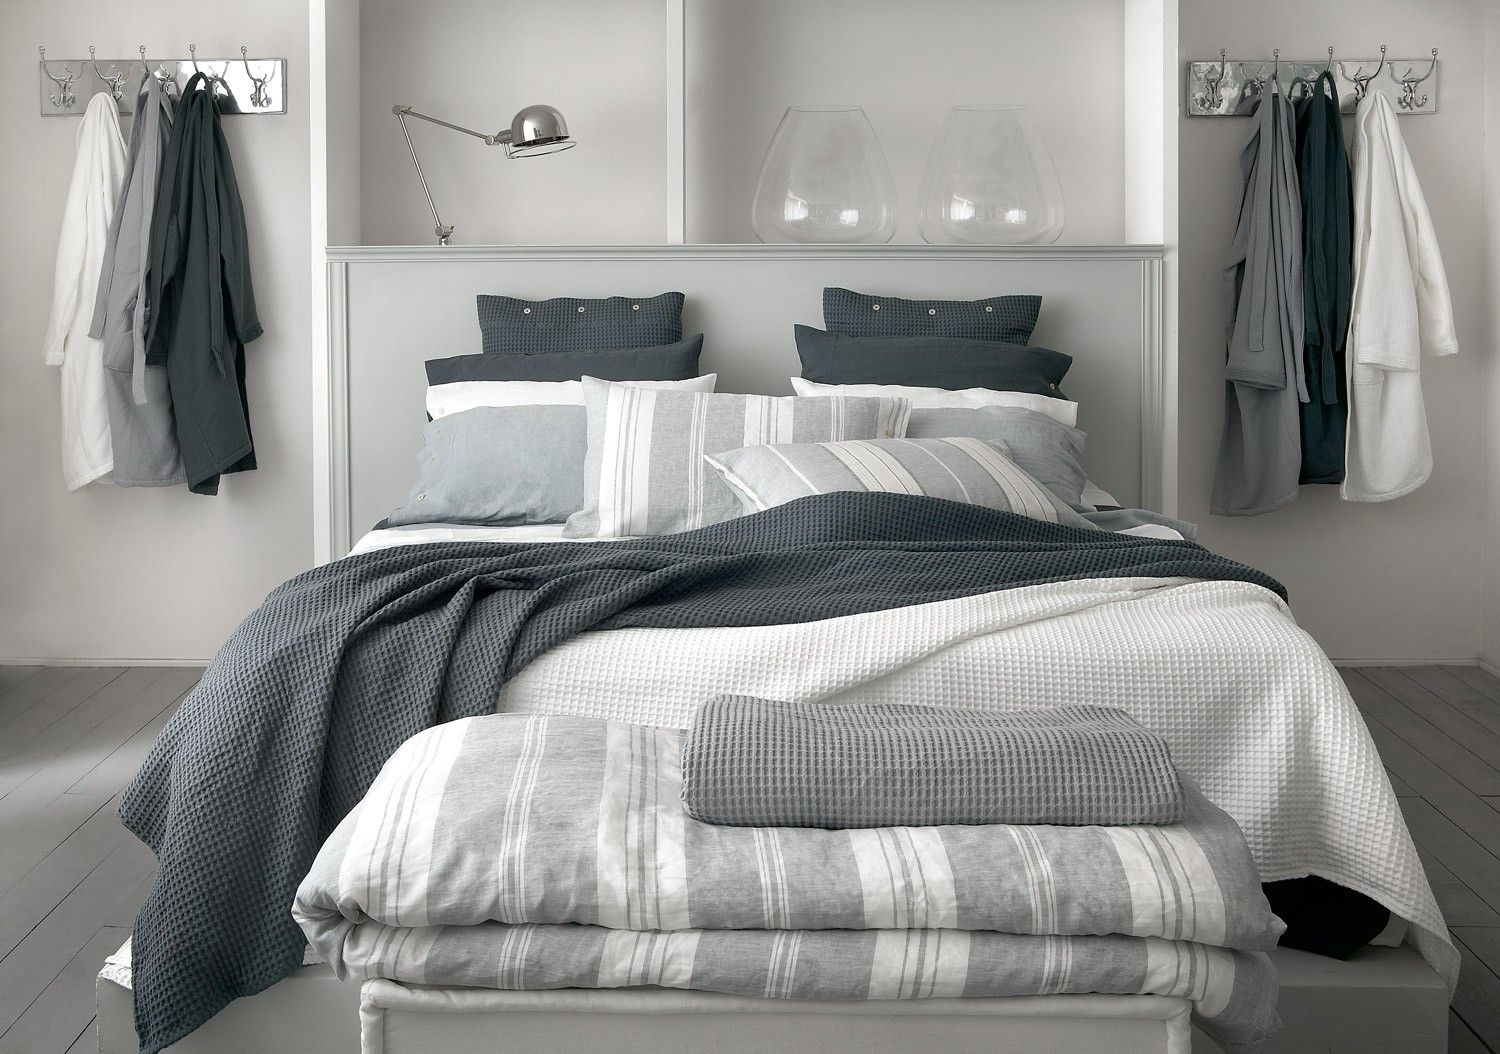 29f2f5fe8bc Bellora Linens from Italy. Romantic country estate style. Exclusive at  Ultra Luxe Linens.